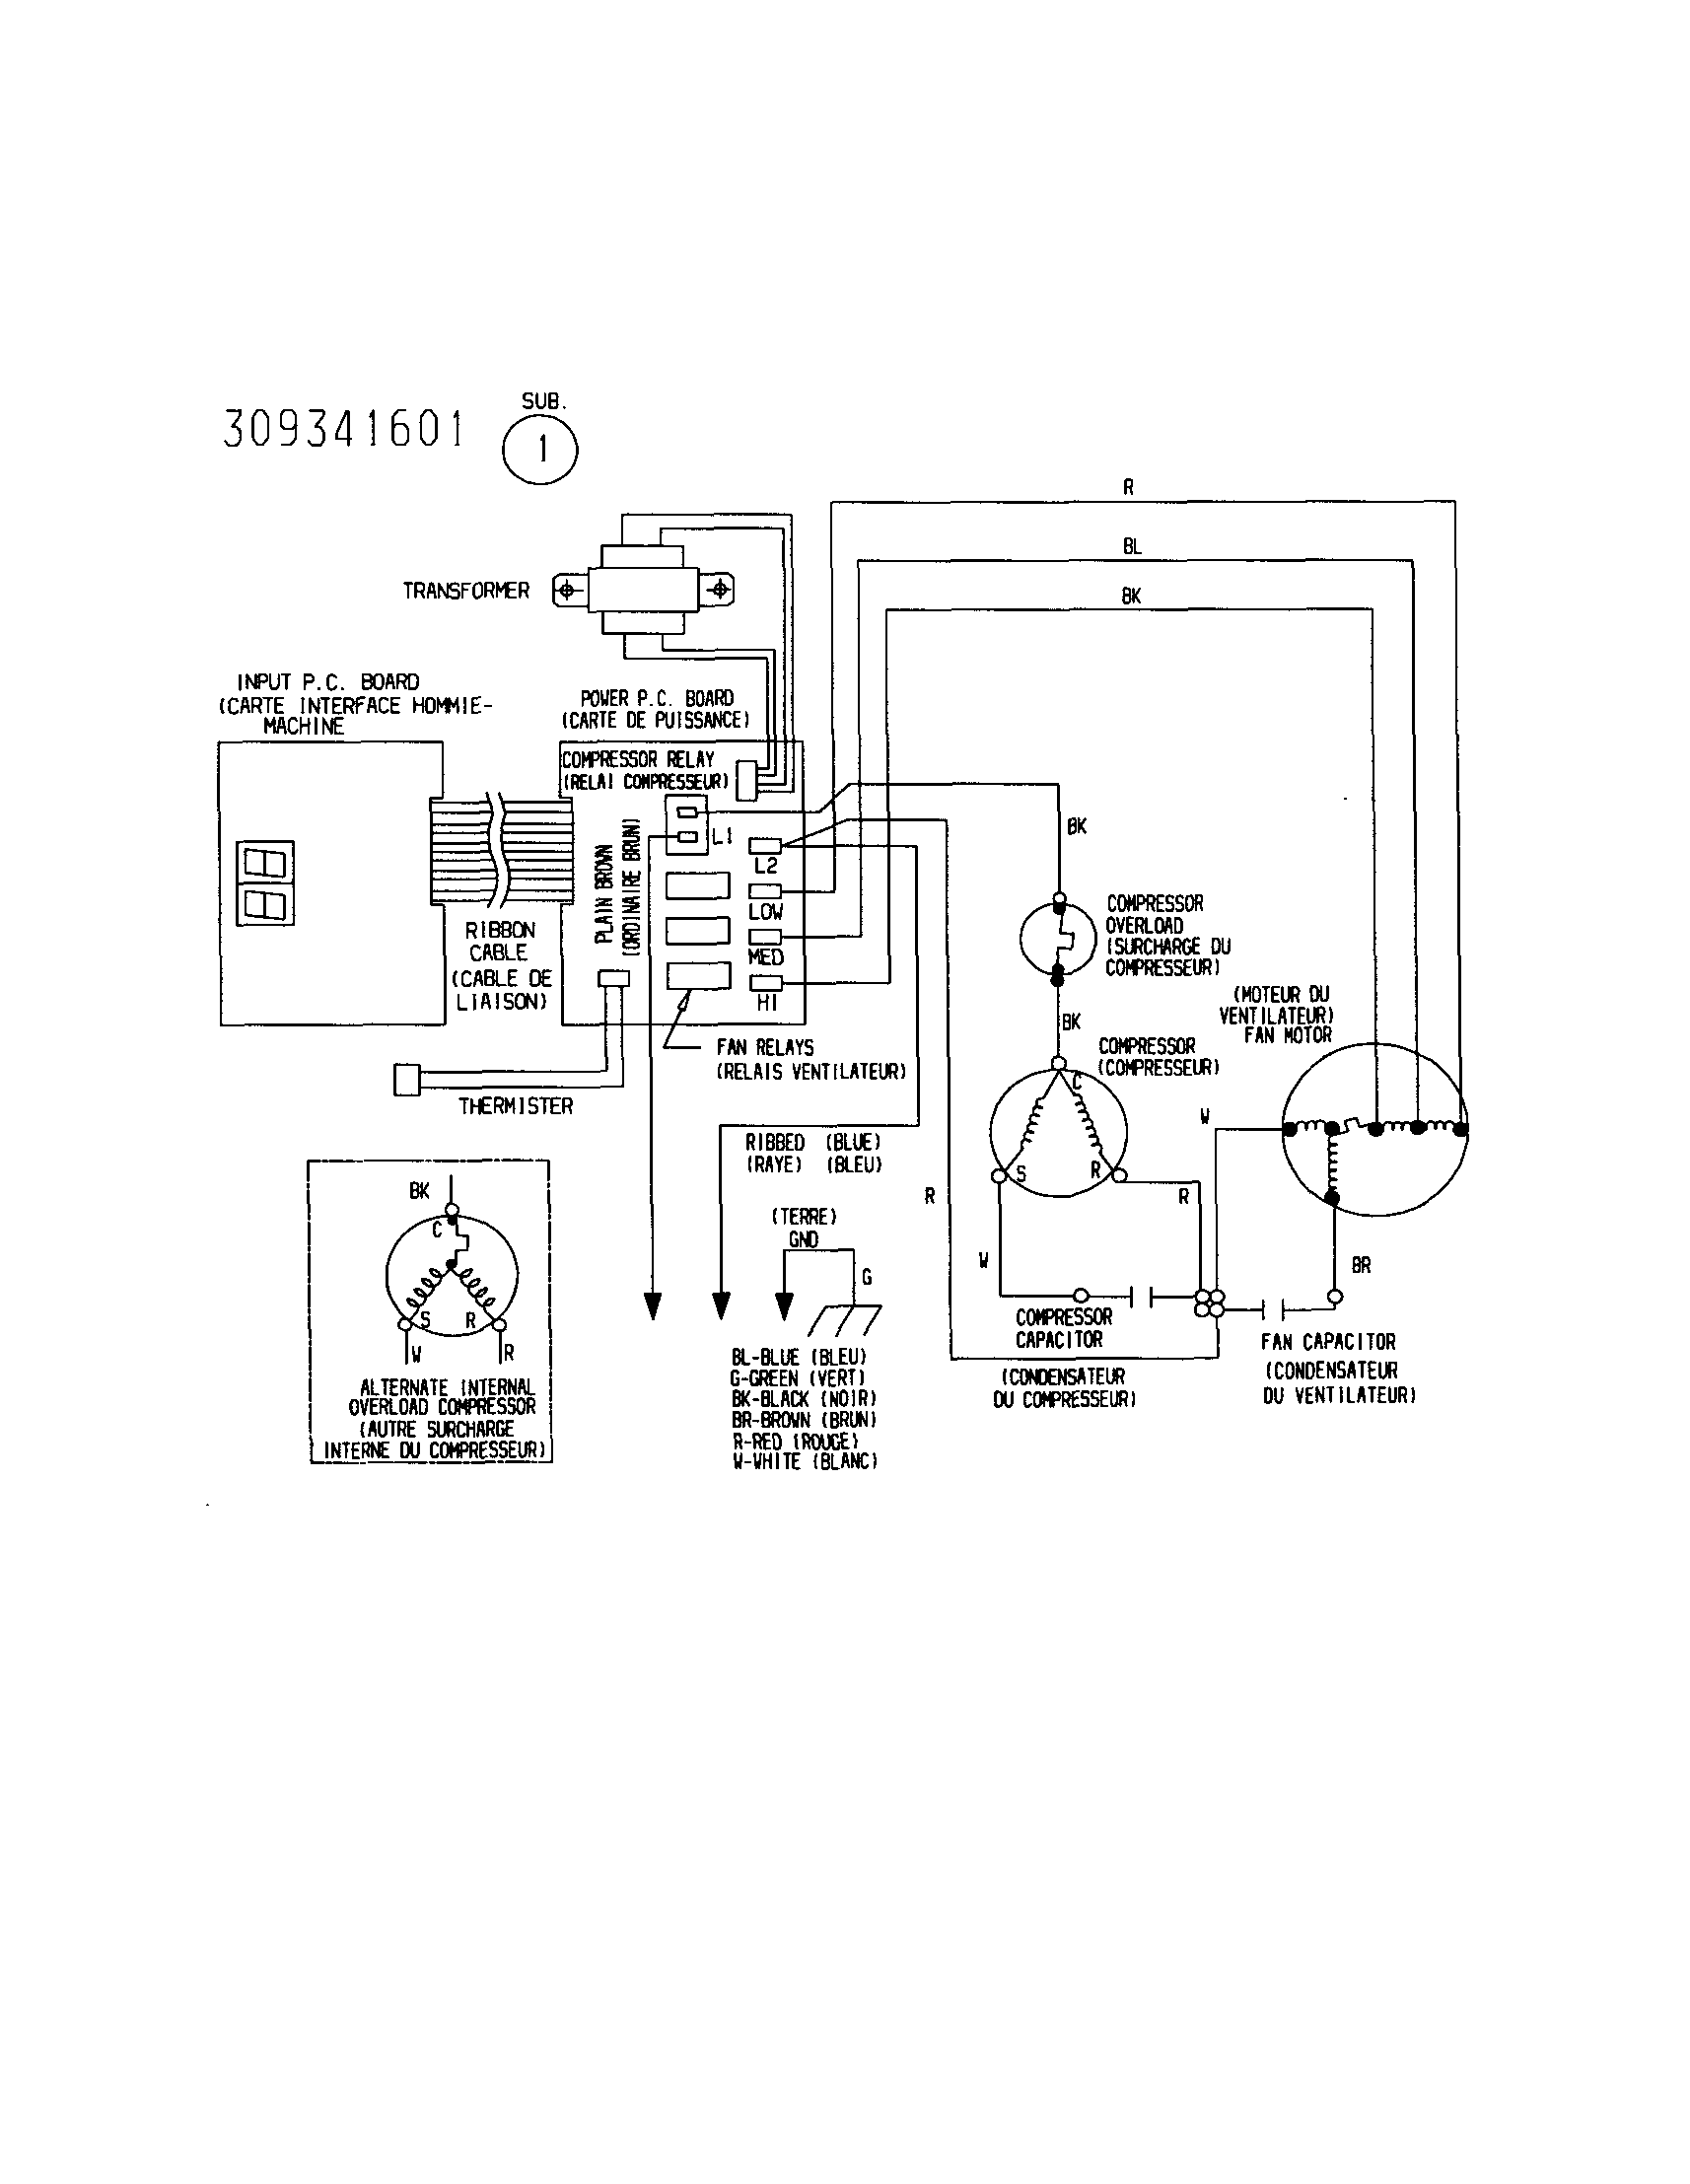 alternating rib relay wiring diagram